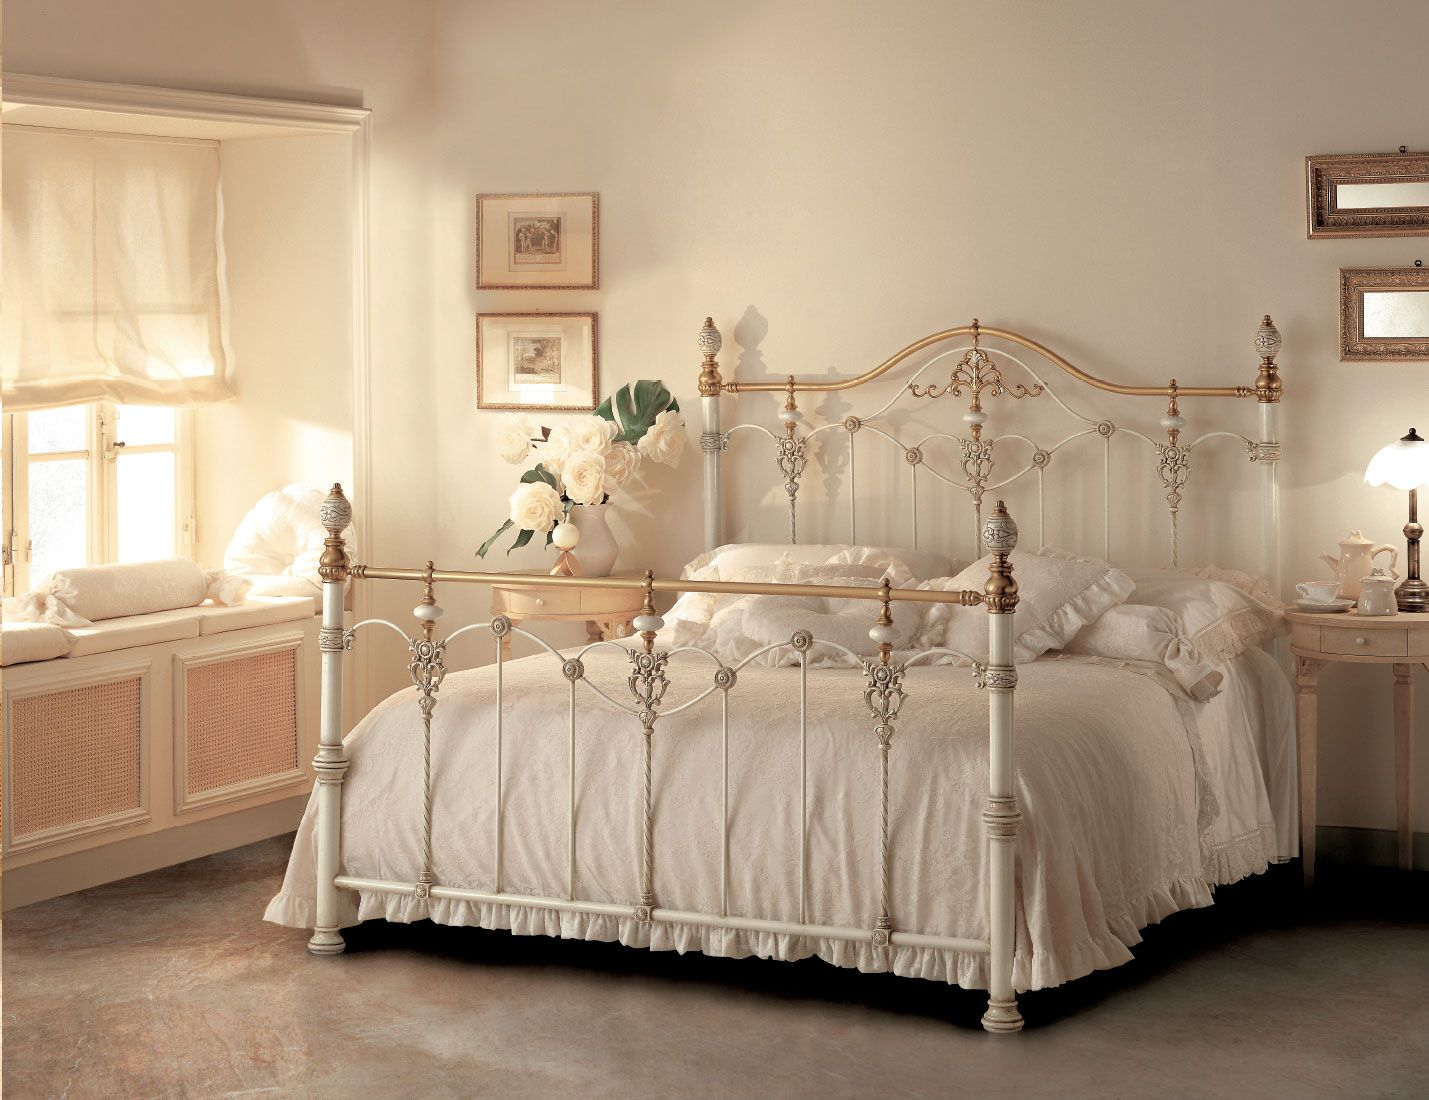 Luxor Iron Bed With Brass And Ceramic Elements Shabby Chic